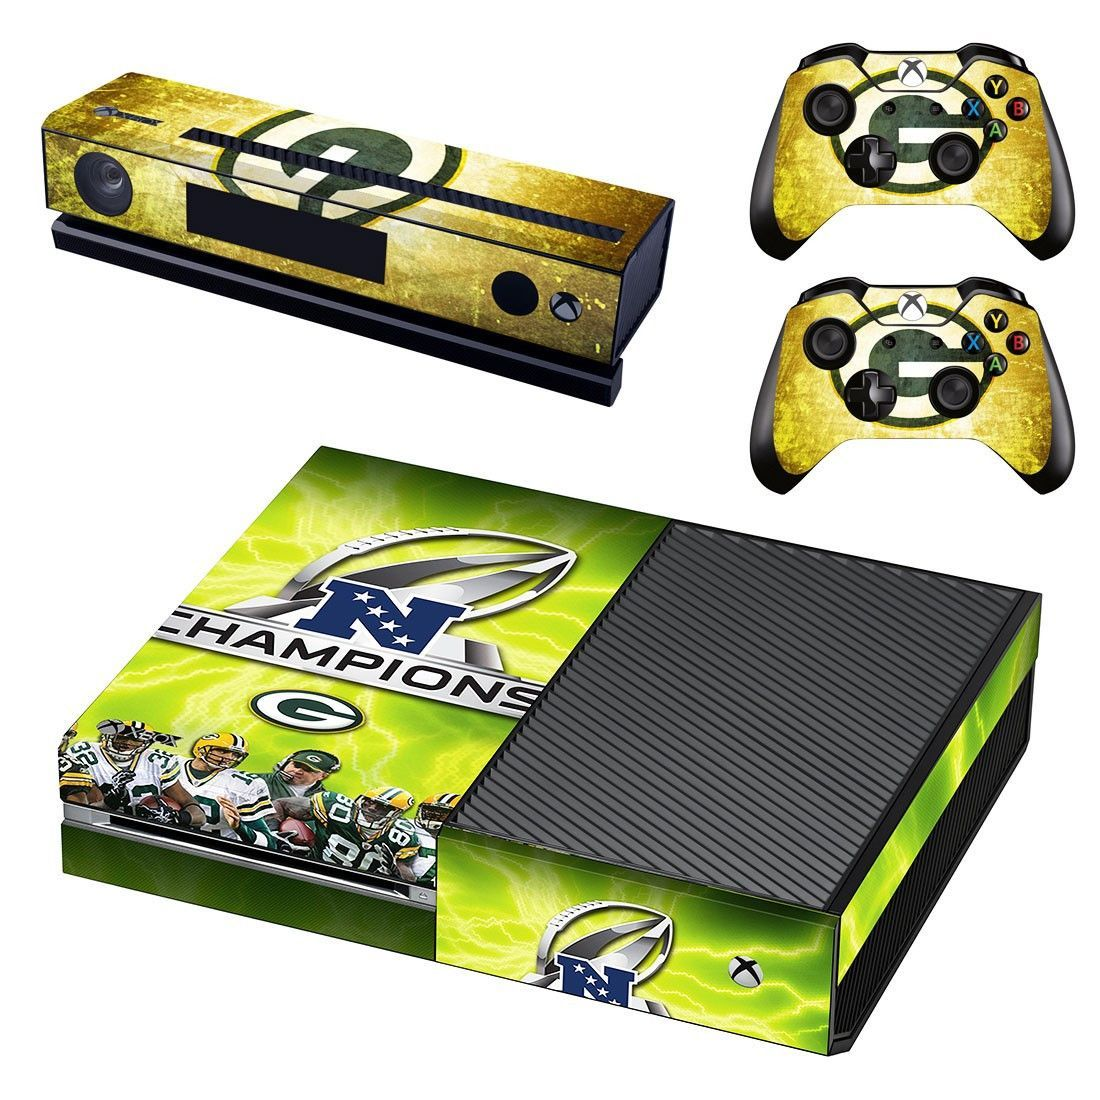 N Champions Skin Decal For Xbox One Console And Controllers Xbox One Skin Xbox One Xbox One Console